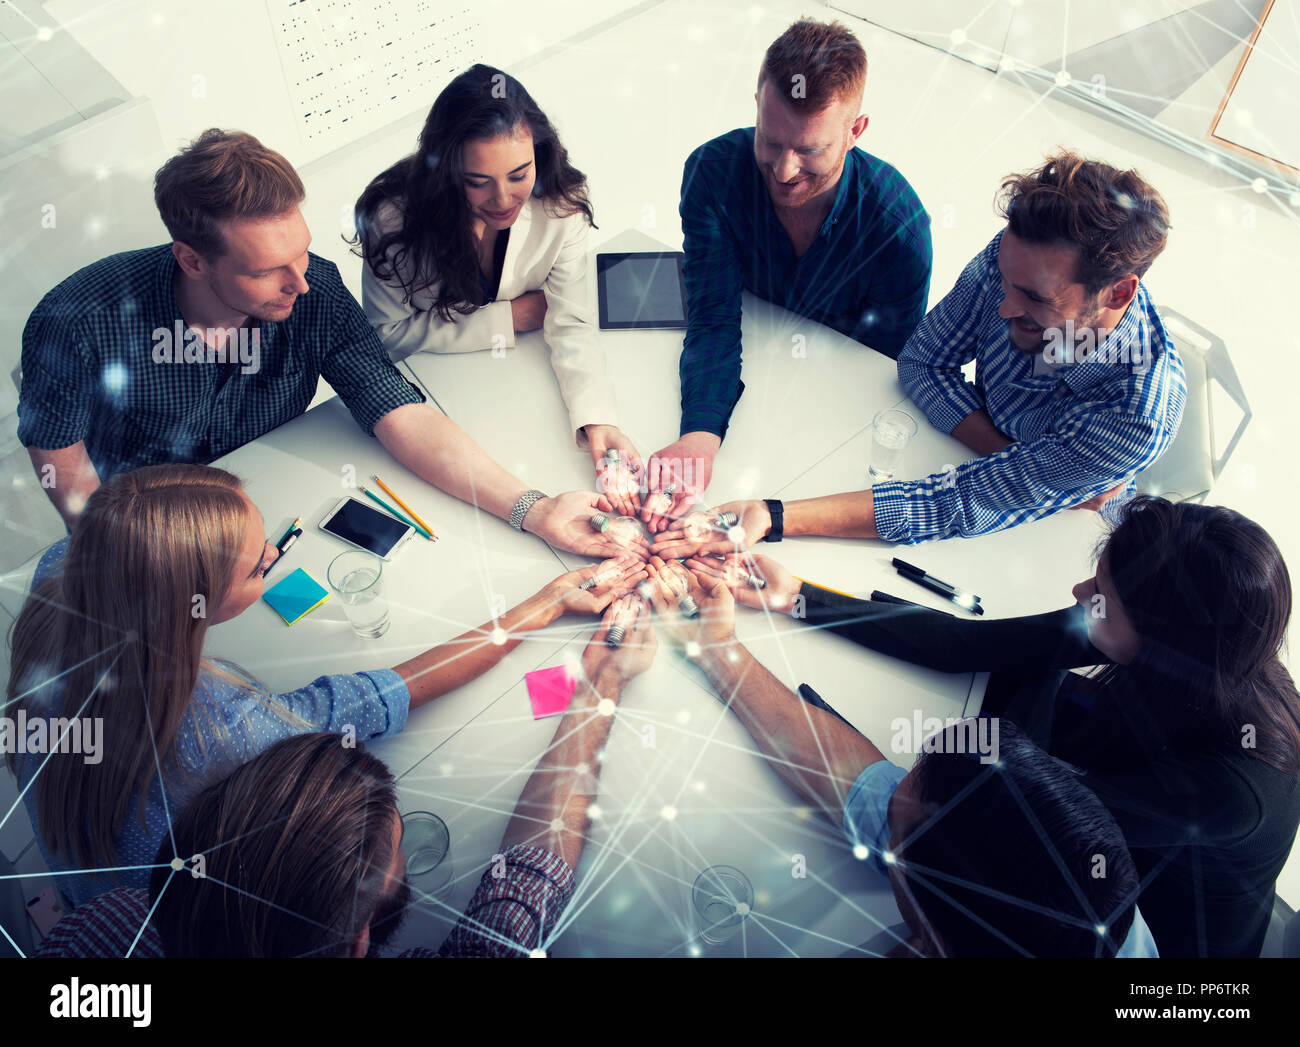 Teamwork And Brainstorming Concept With Businessmen That